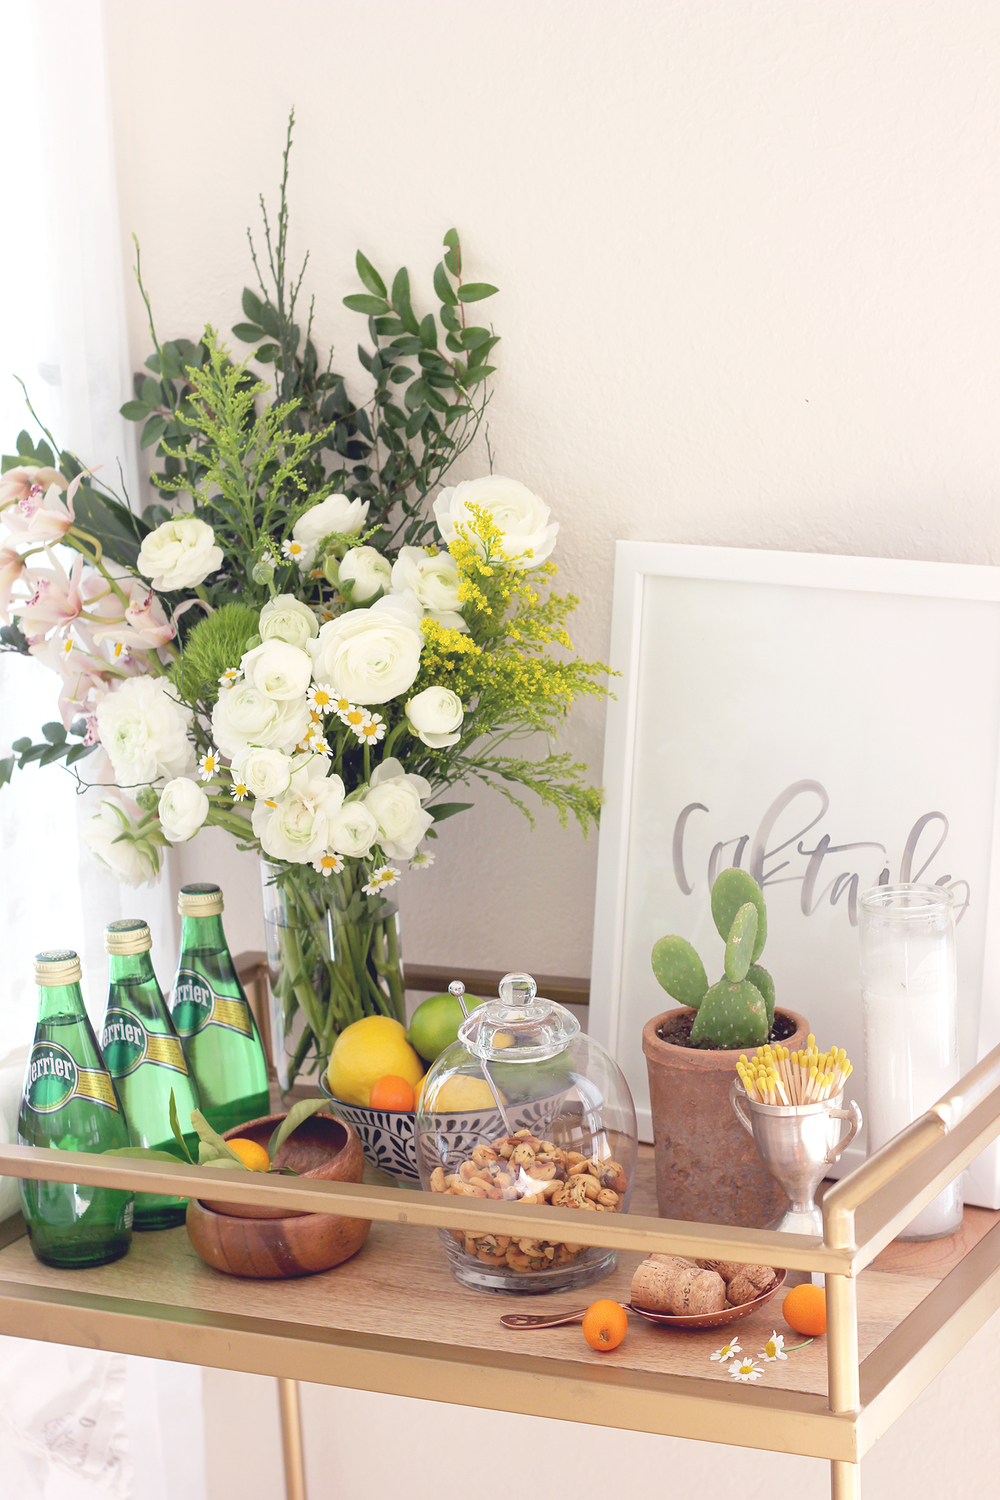 Ideas for decorating your bar cart this spring and summer | A Fabulous Fete